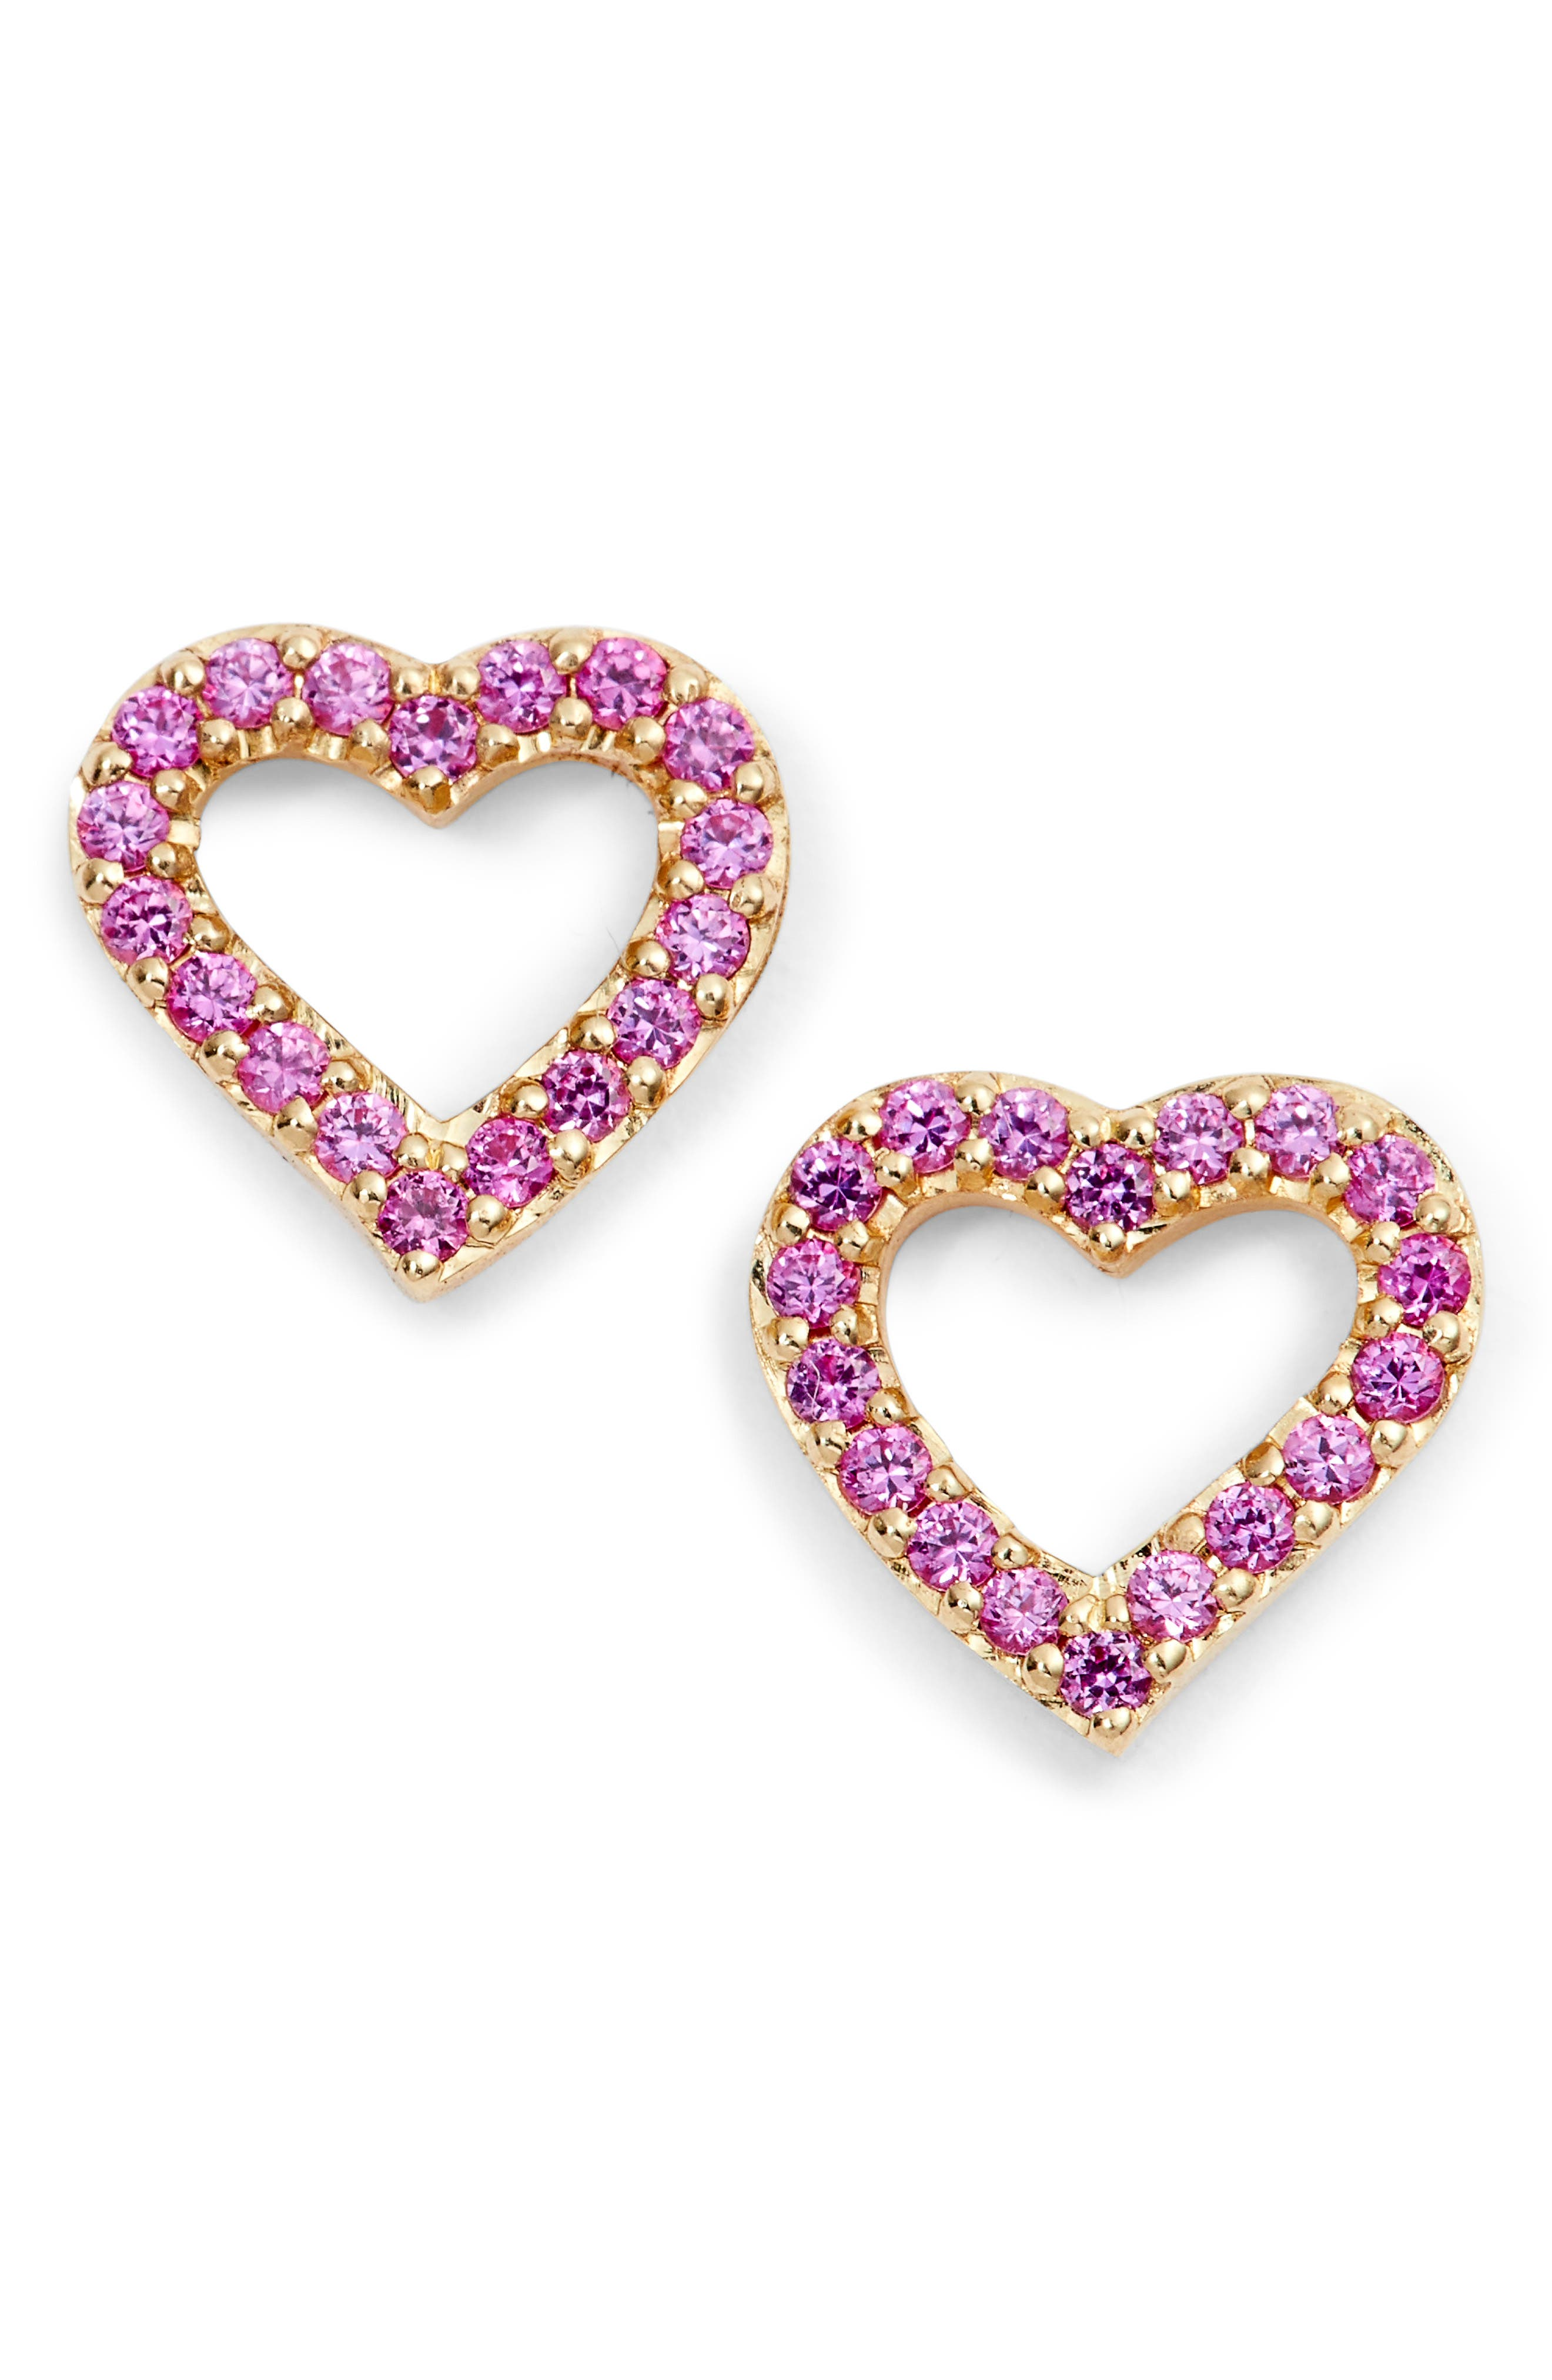 Mini Heart Sapphire Stud Earrings,                         Main,                         color, Yellow Gold